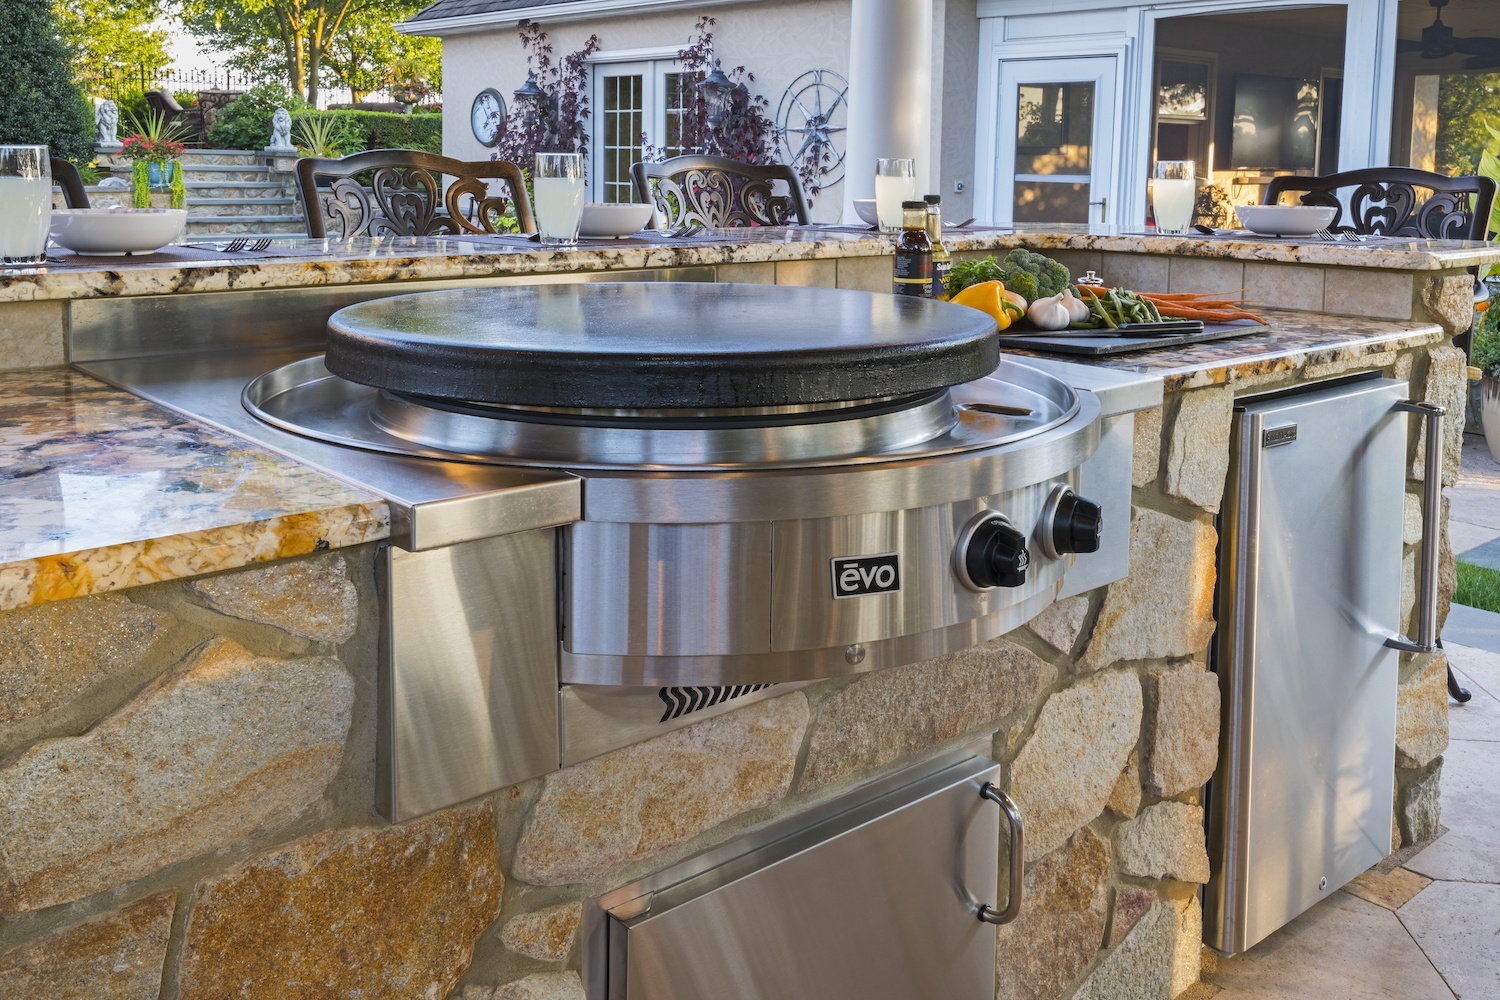 outdoor kitchen Evo grill